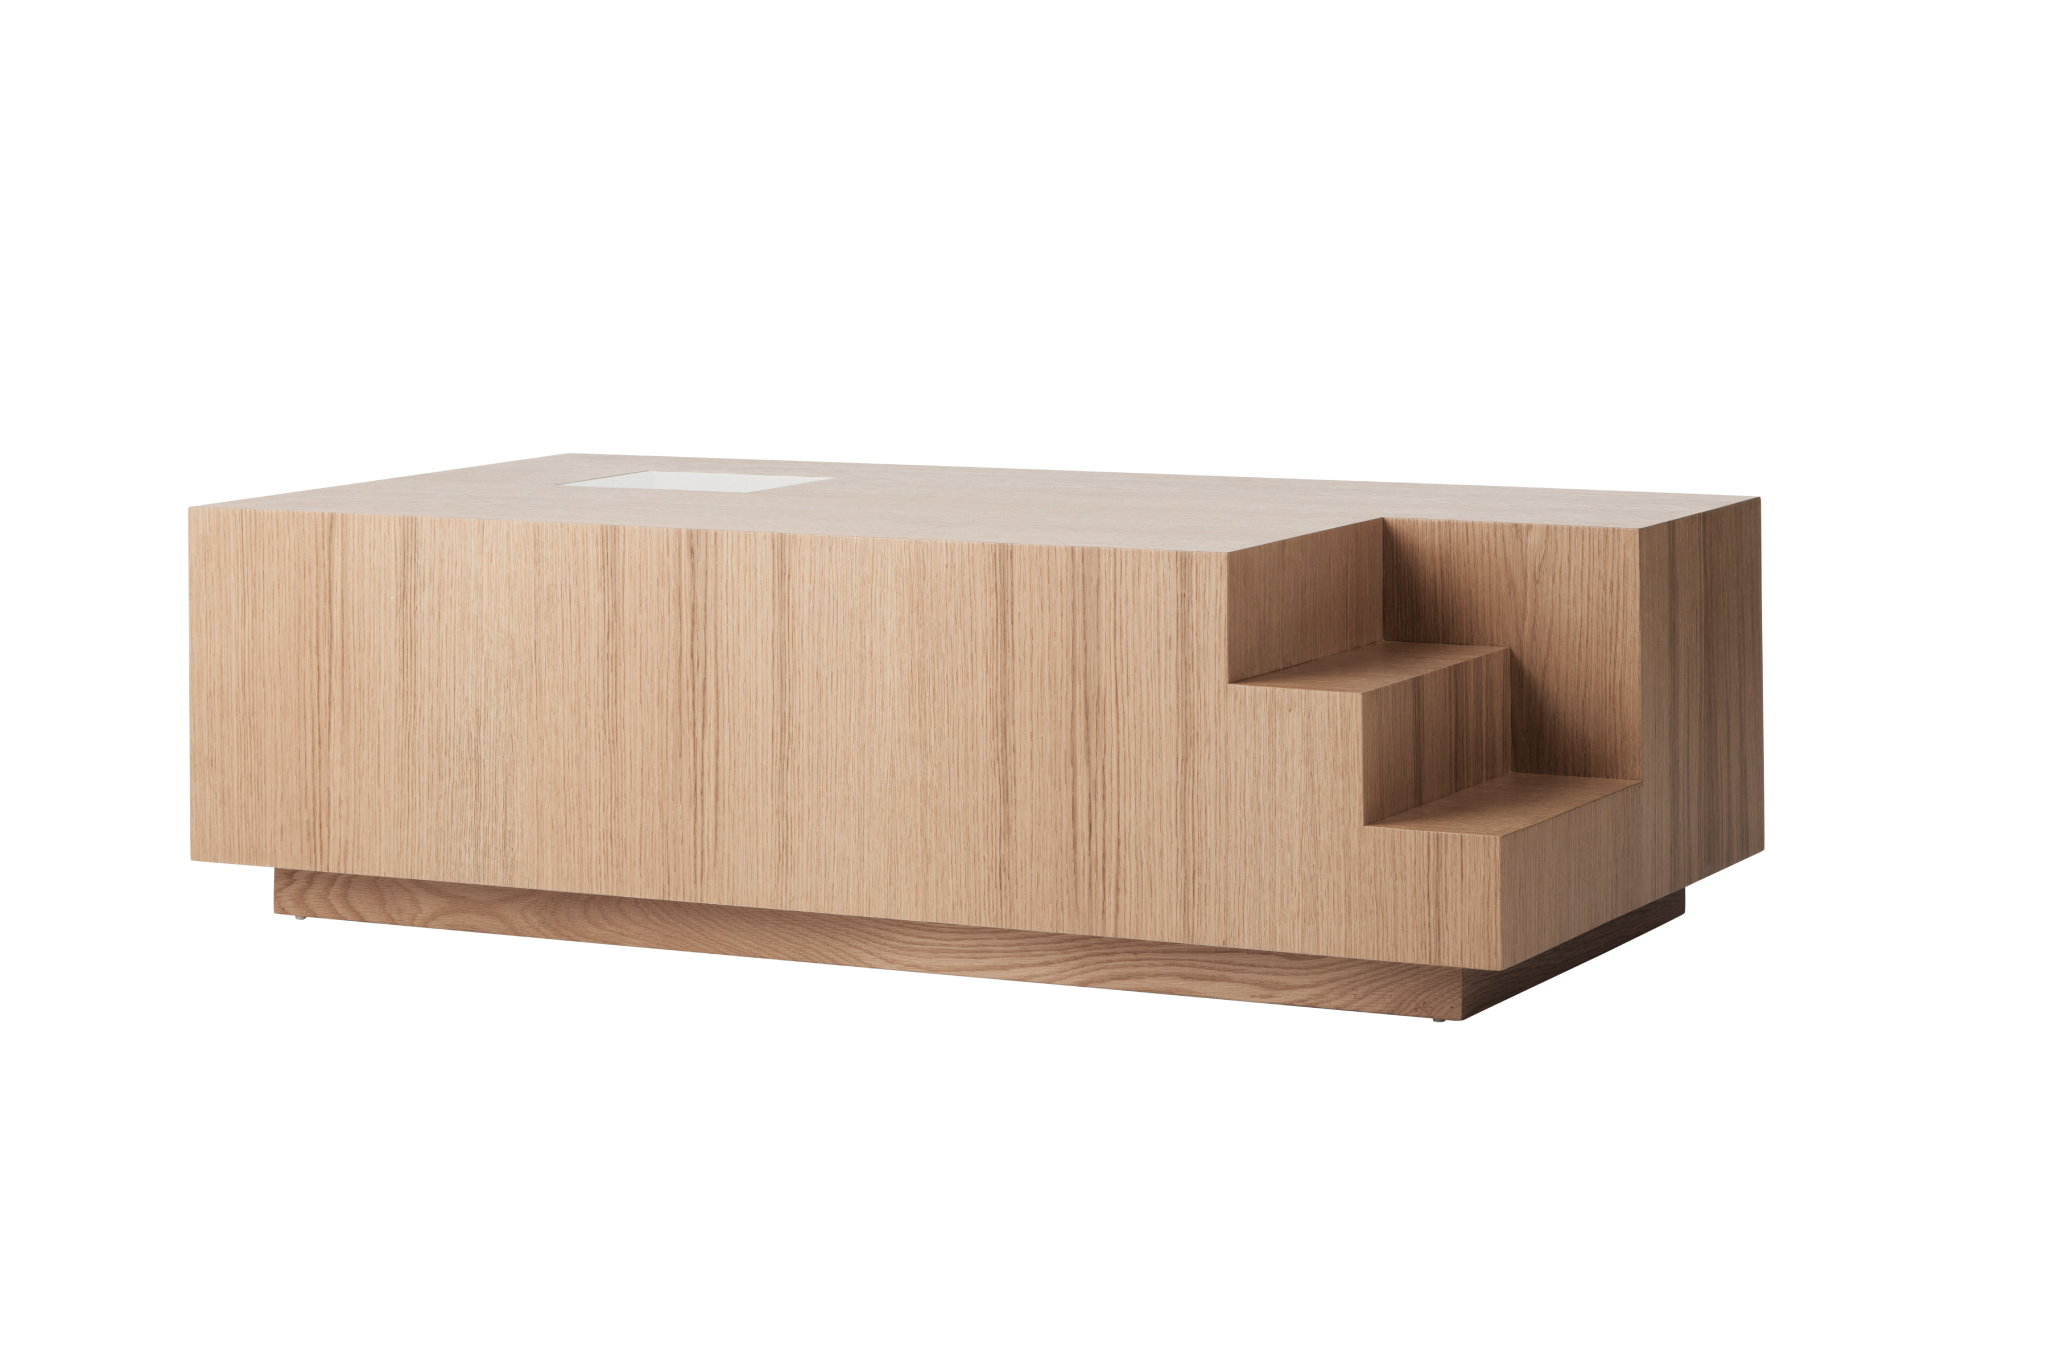 Sydney Coffee Tables For Sale